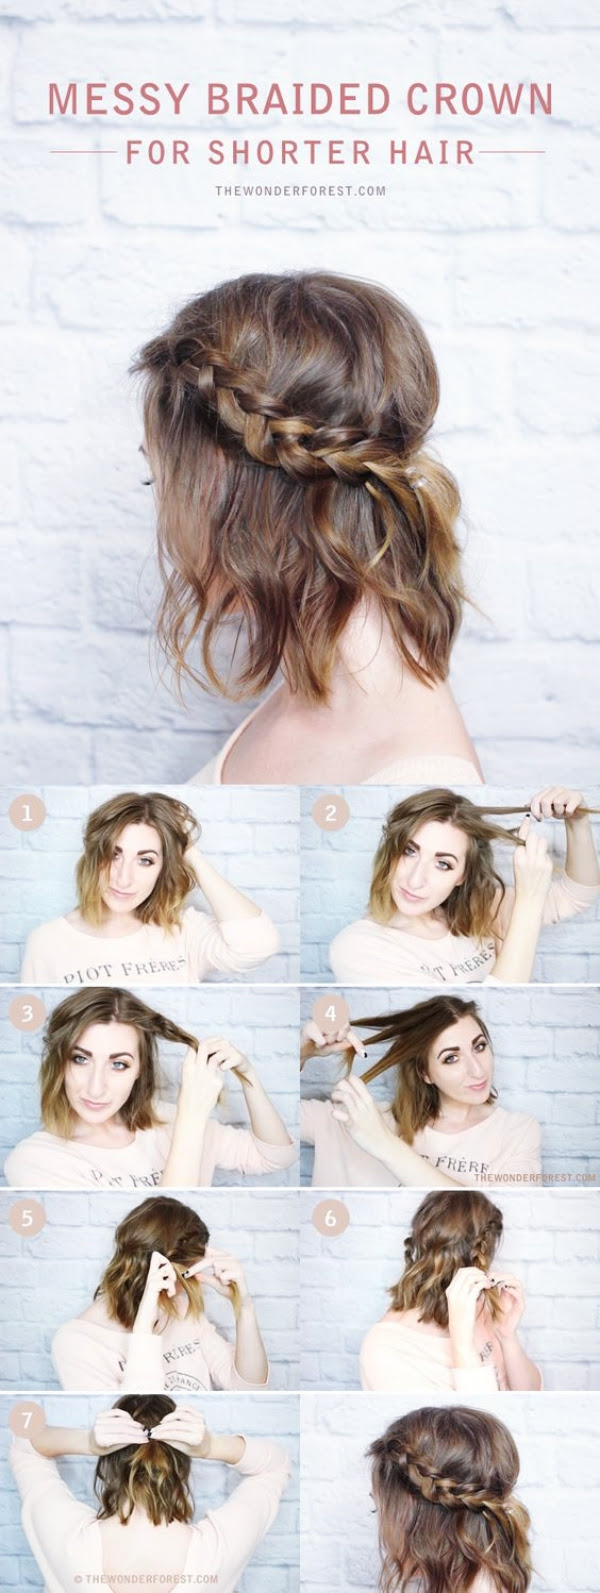 12+ Inspiration Hairstyle Short Hair Girl Easy